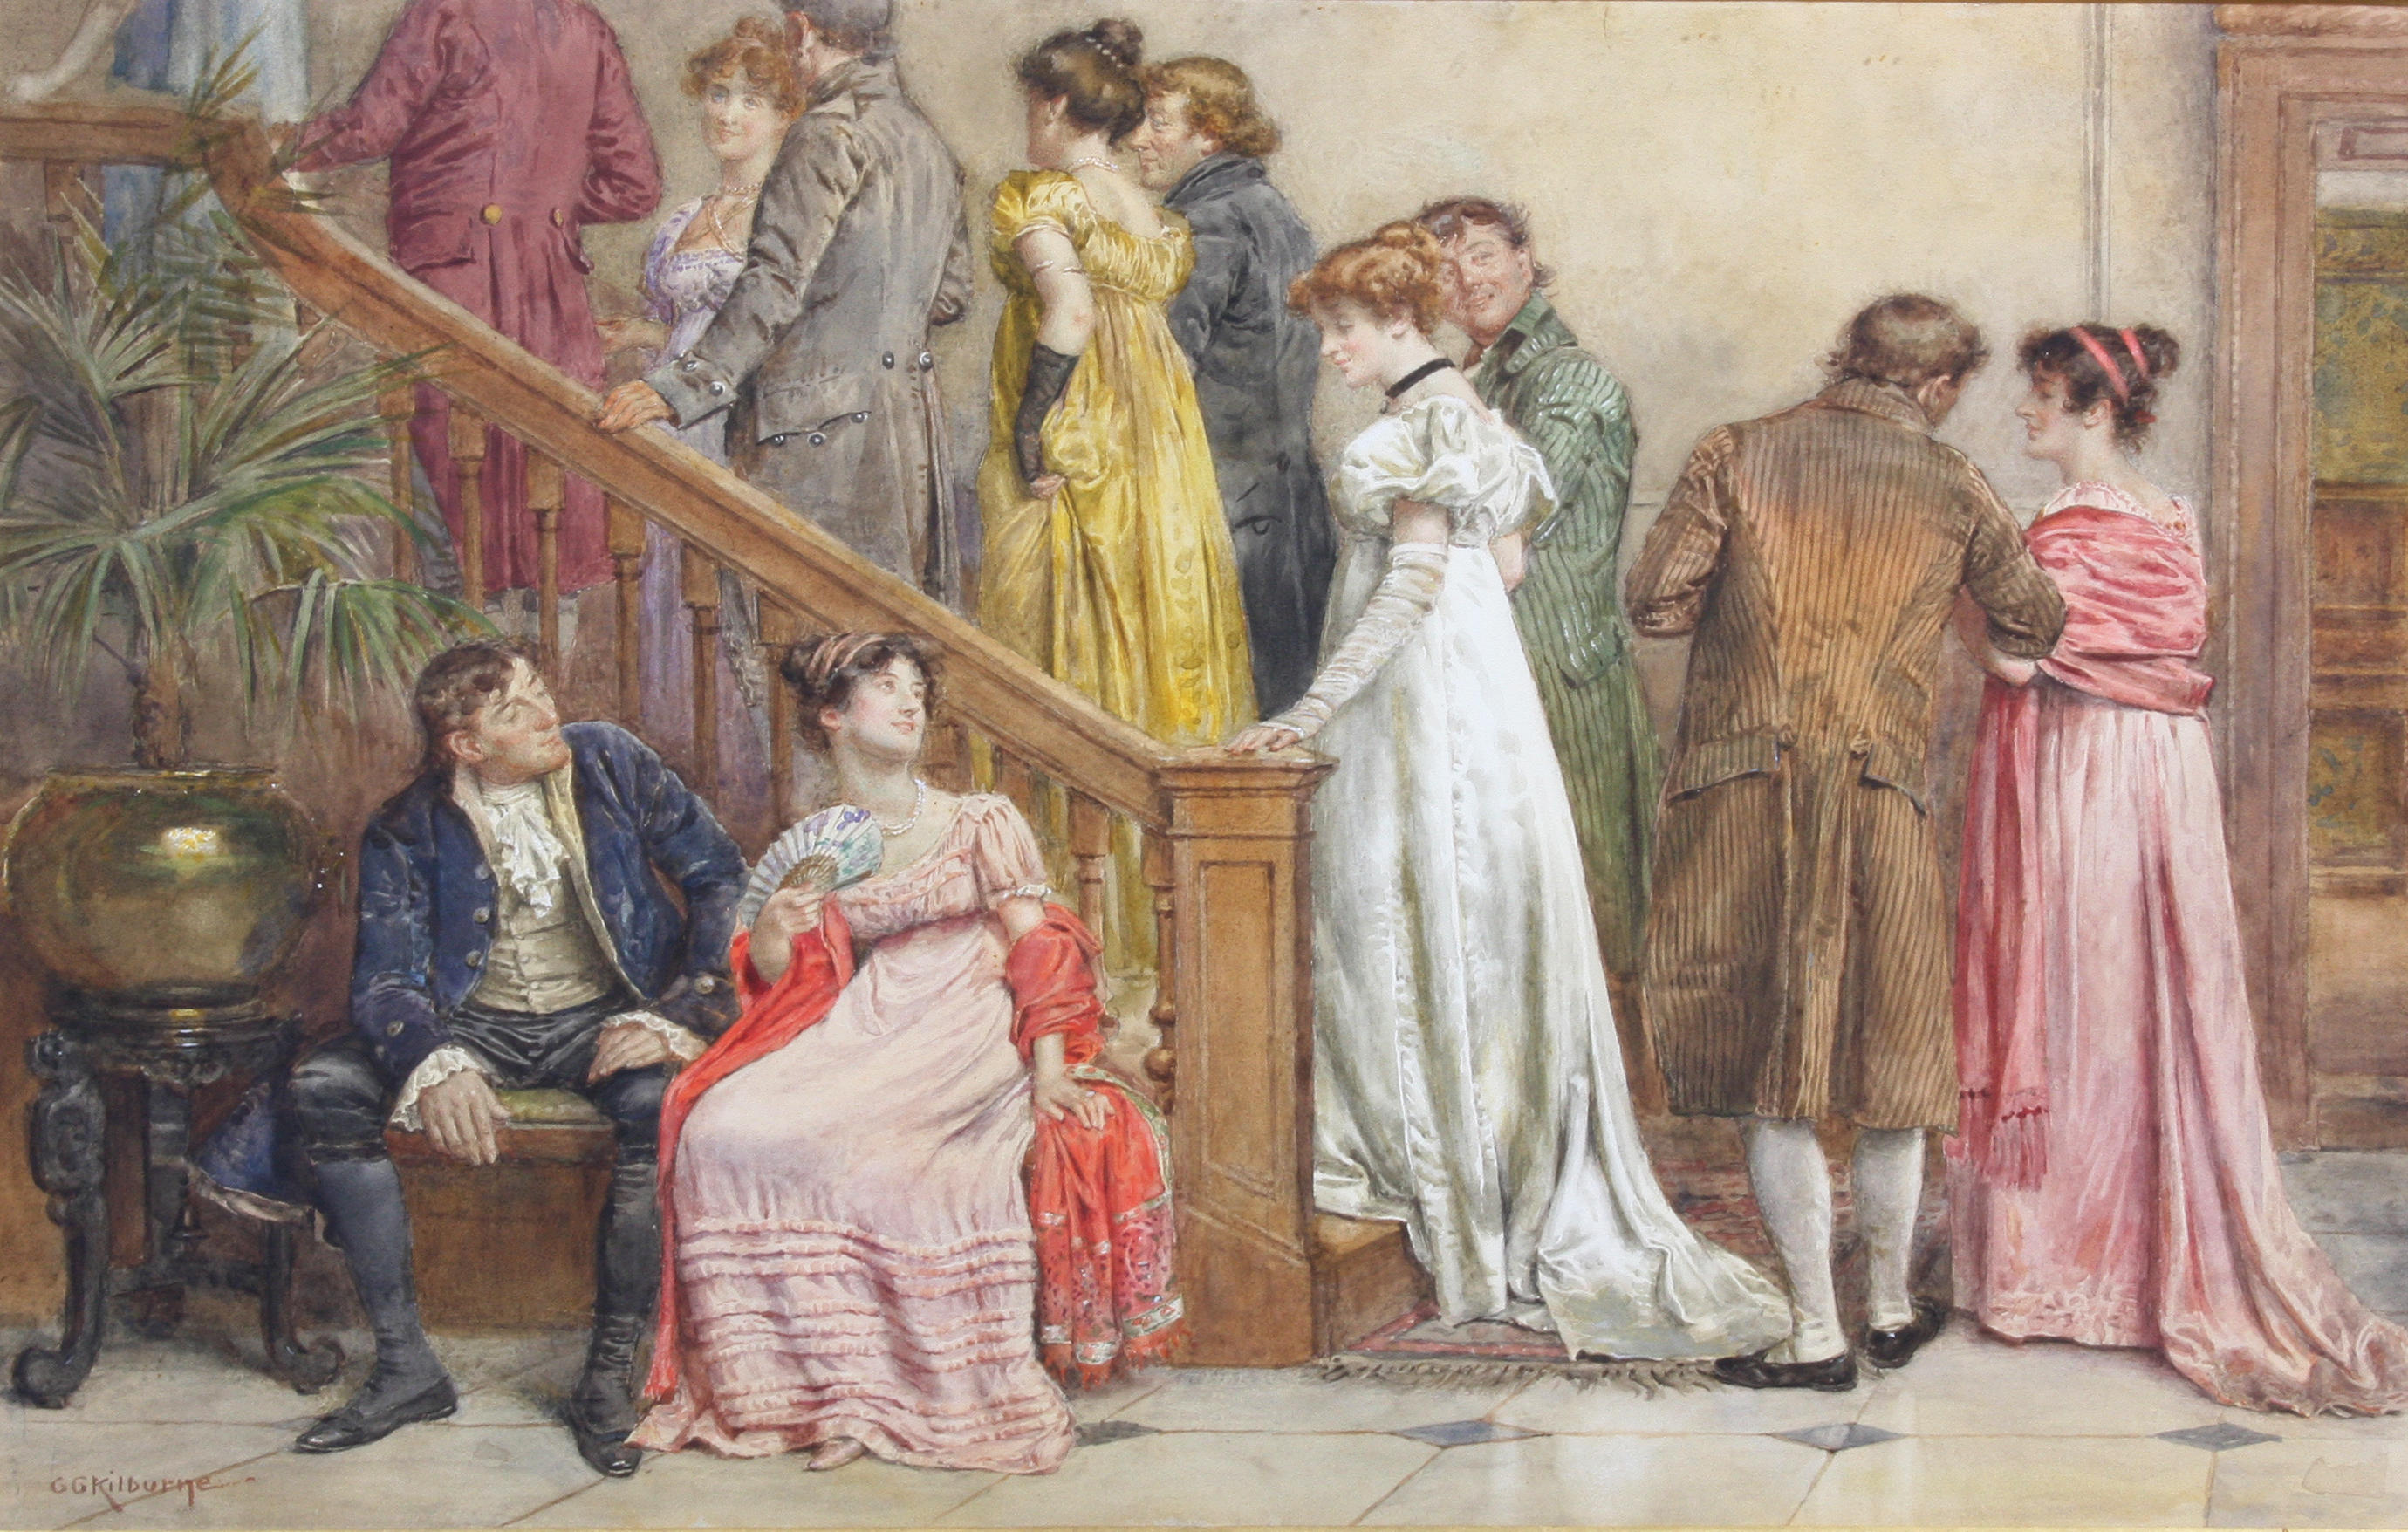 George_Goodwin_Kilburne_The_Next_Dance.jpg